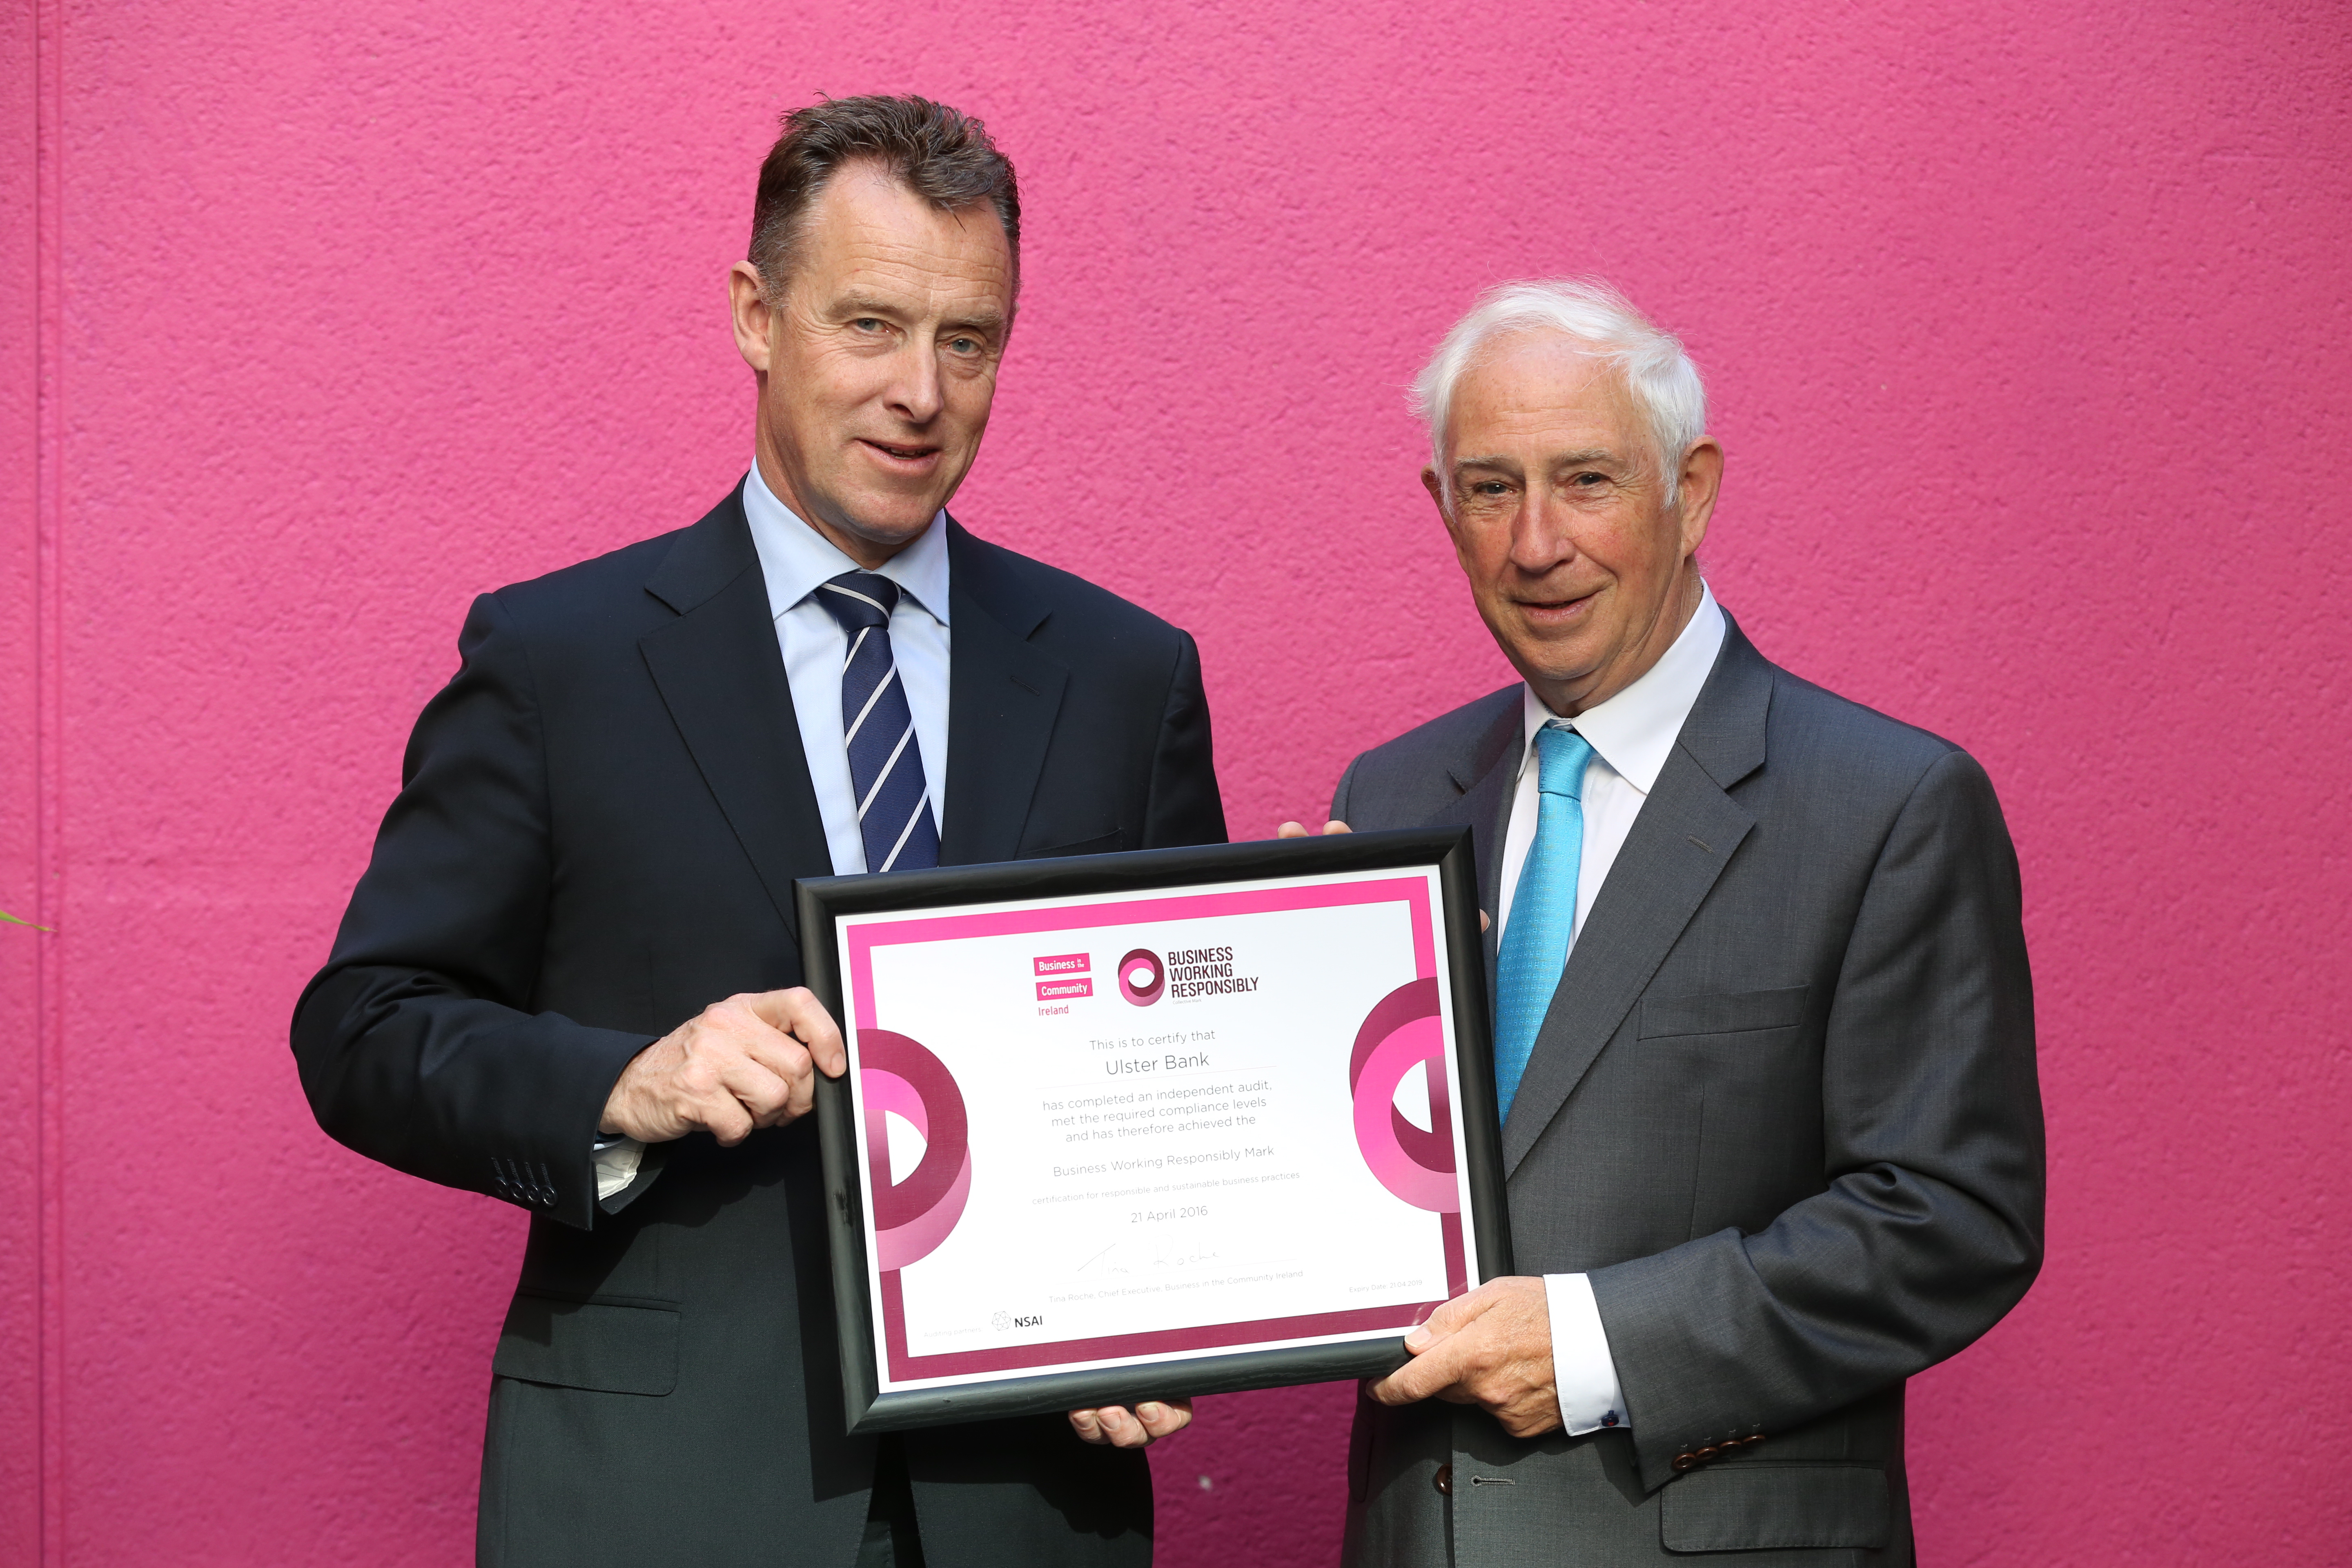 Paul Stanley, Interim CEO Ulster Bank with Kieran McGowan, Chairperson